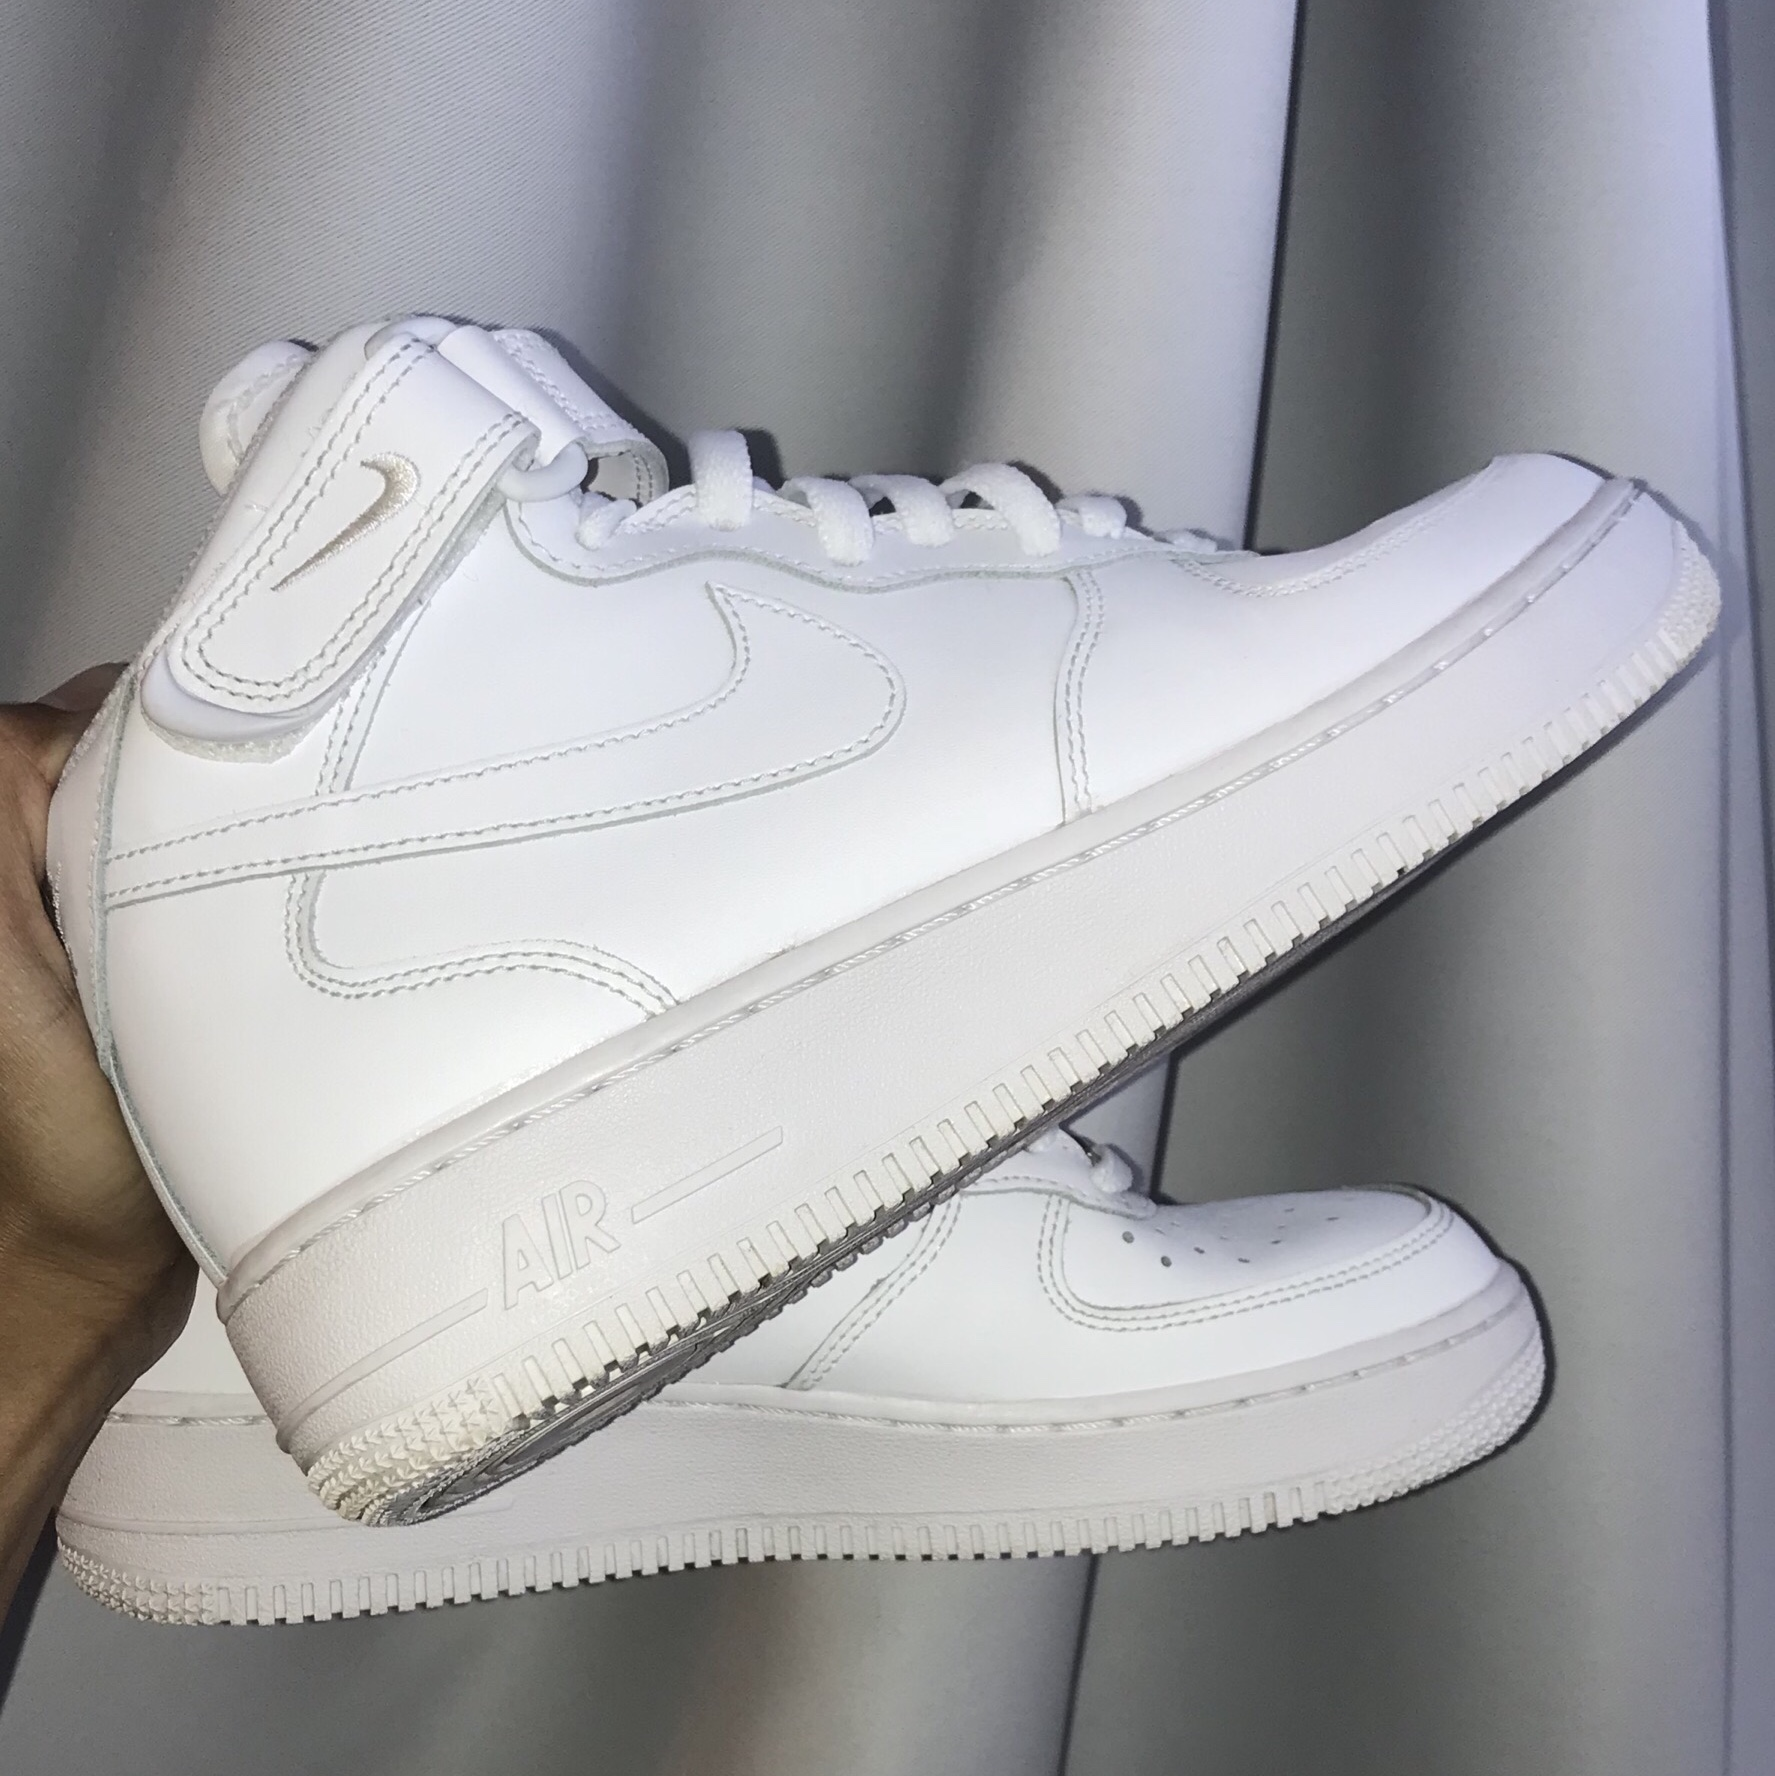 White Nike Air Force 1 High Top. Size